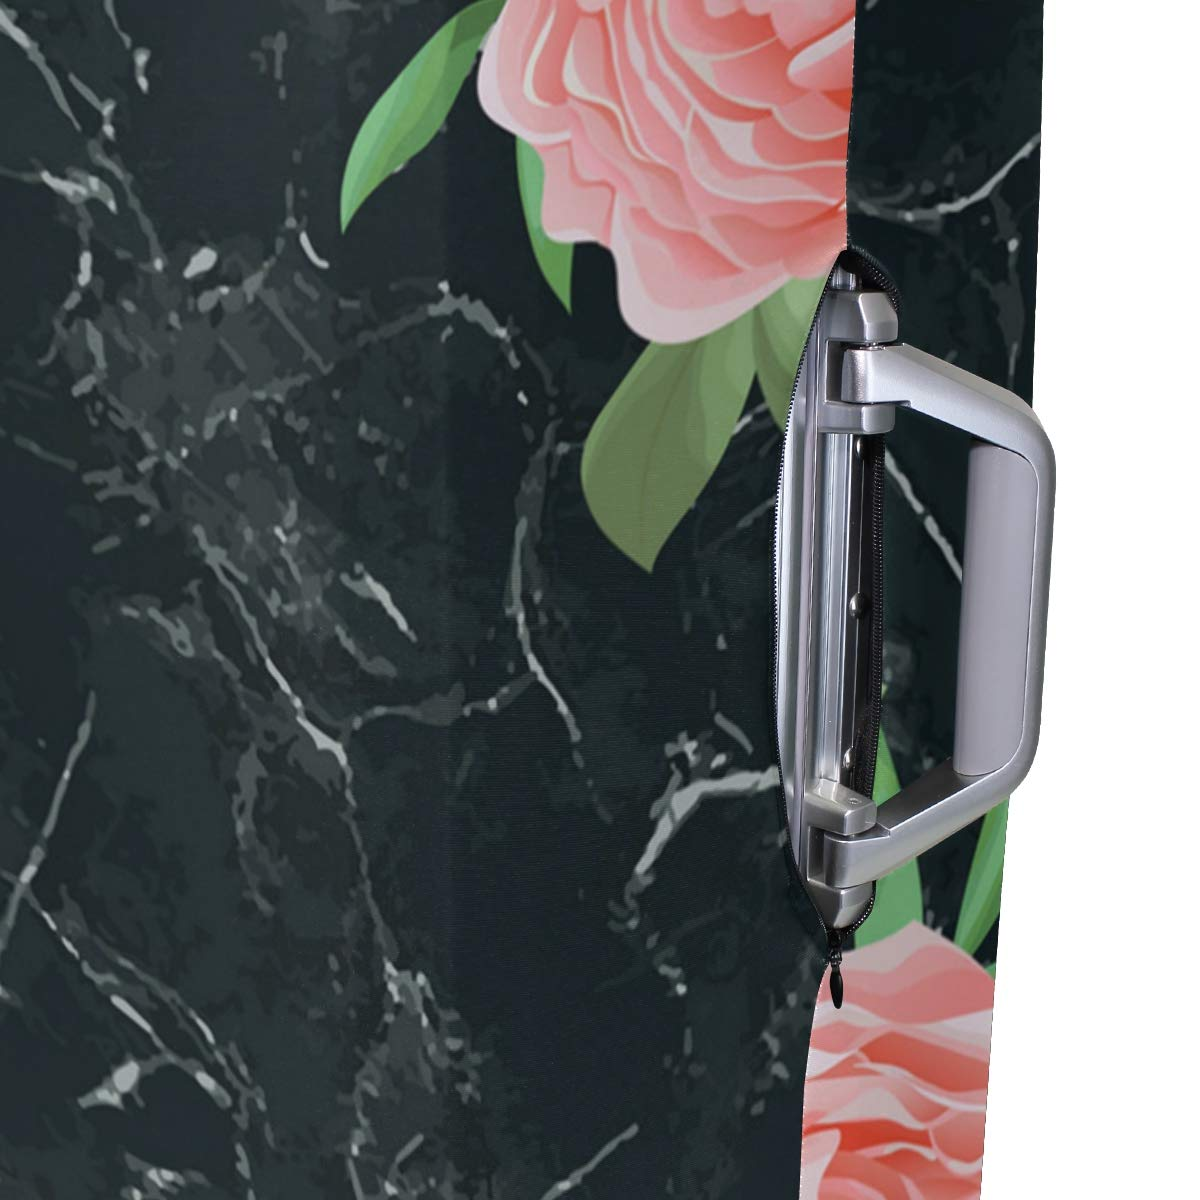 Black Marble Pattern Traveler Lightweight Rotating Luggage Cover Can Carry With You Can Expand Travel Bag Trolley Rolling Luggage Cover